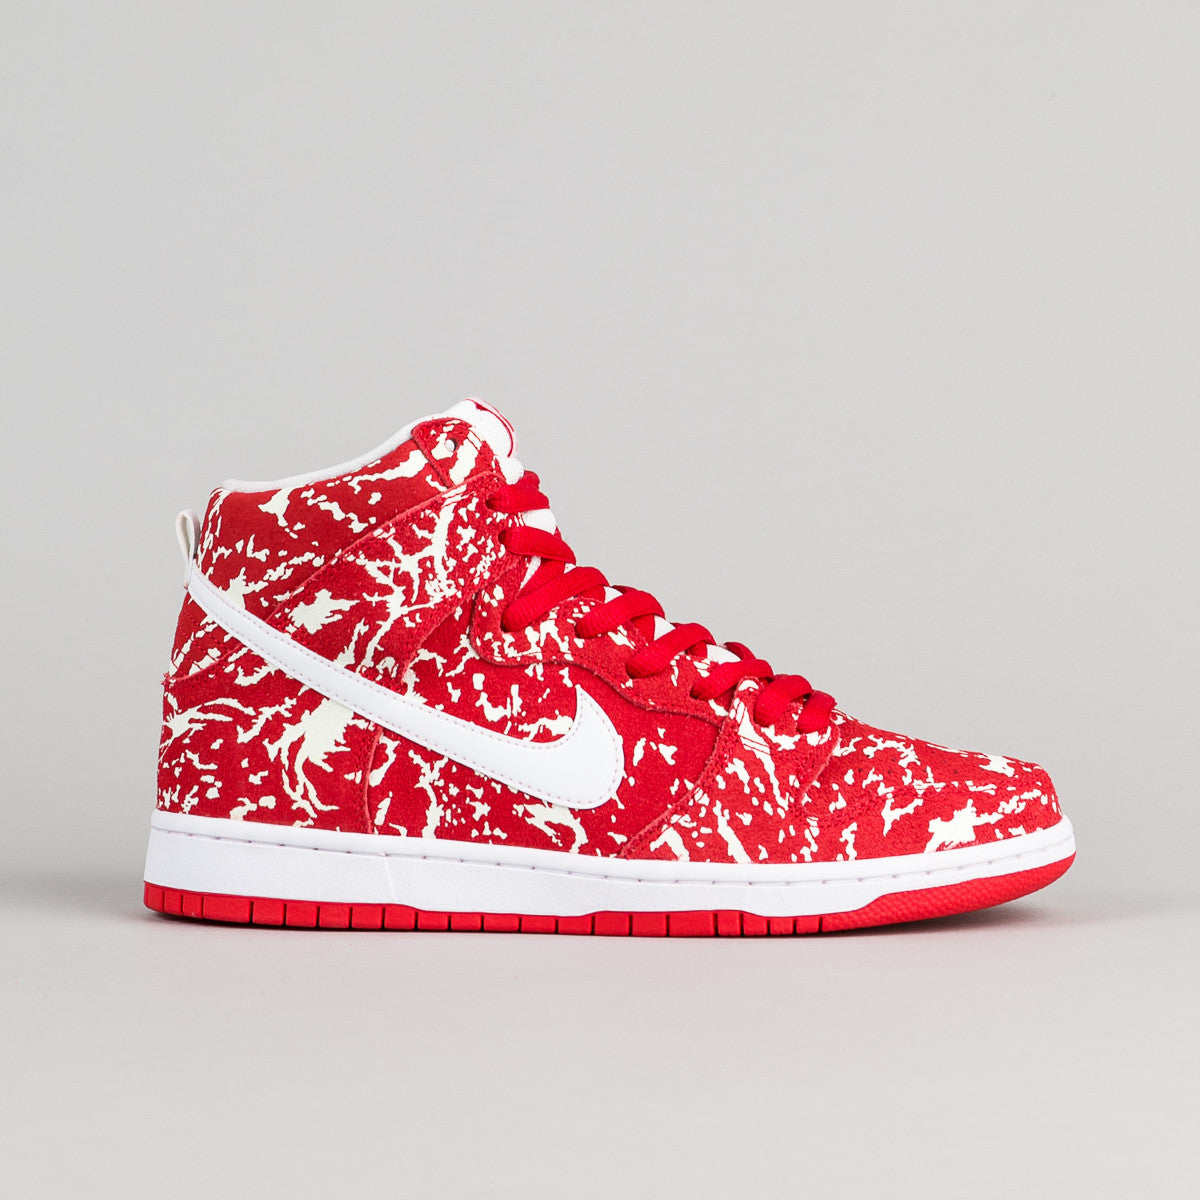 Nike SB Dunk High Premium 'Raw Meat' Shoes - Challenge Red / White